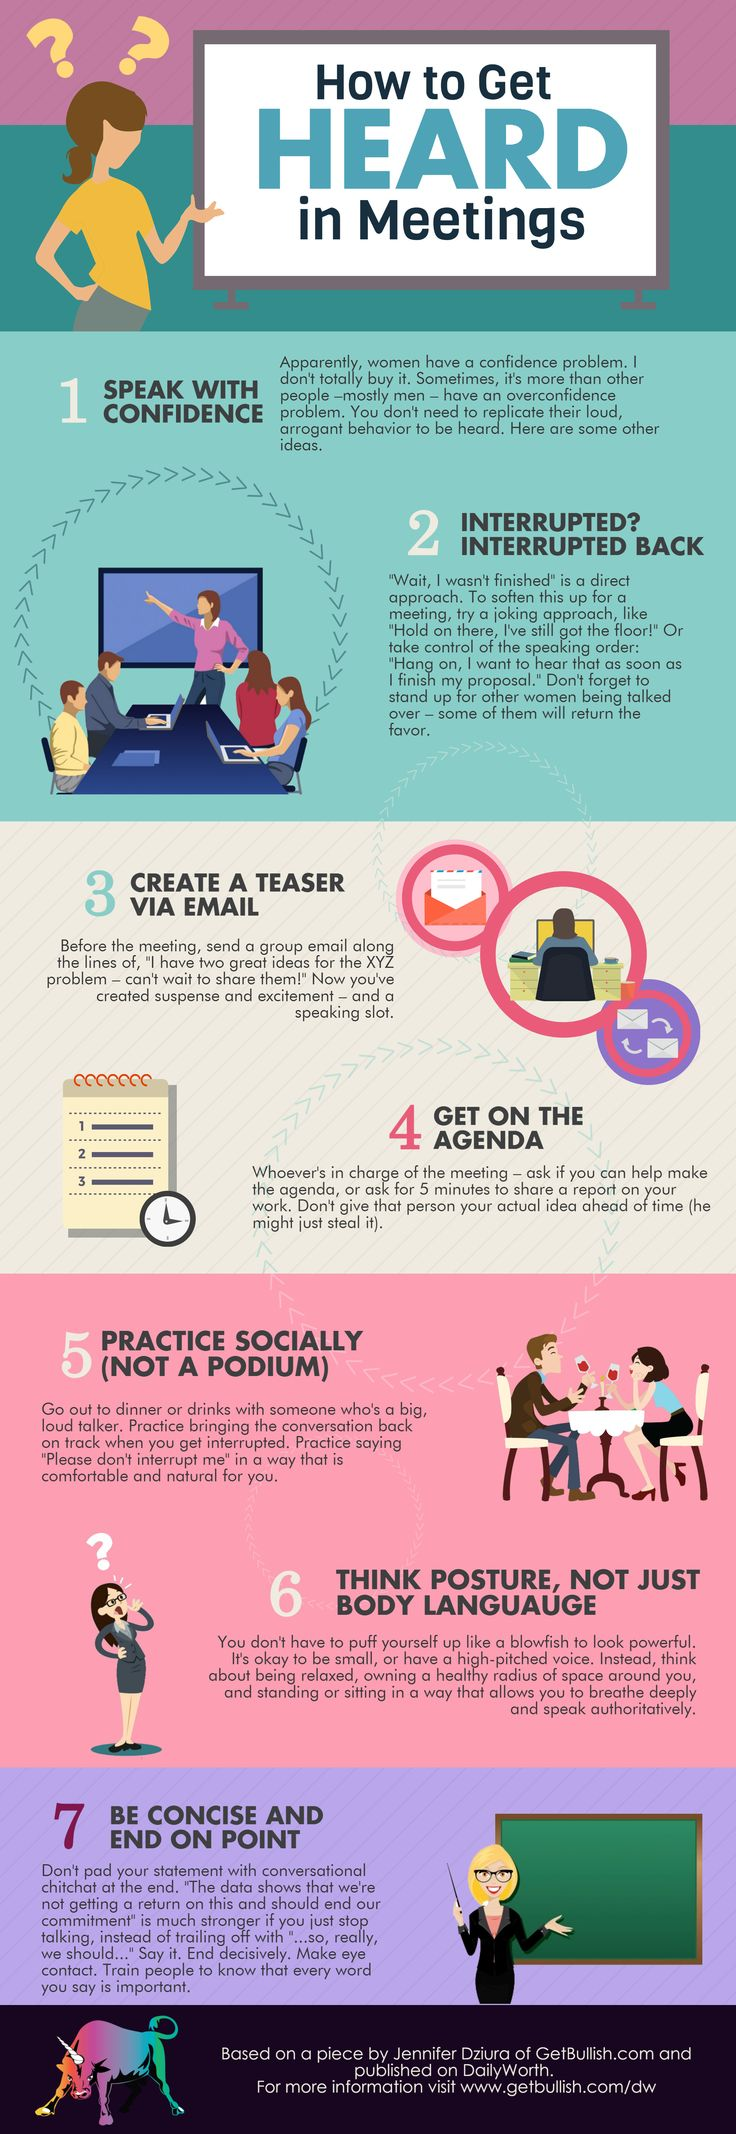 How to Get Heard in Meetings, based on an article by Jennifer Dziura of GetBullish. Don't let dudebros and sexism get you down.